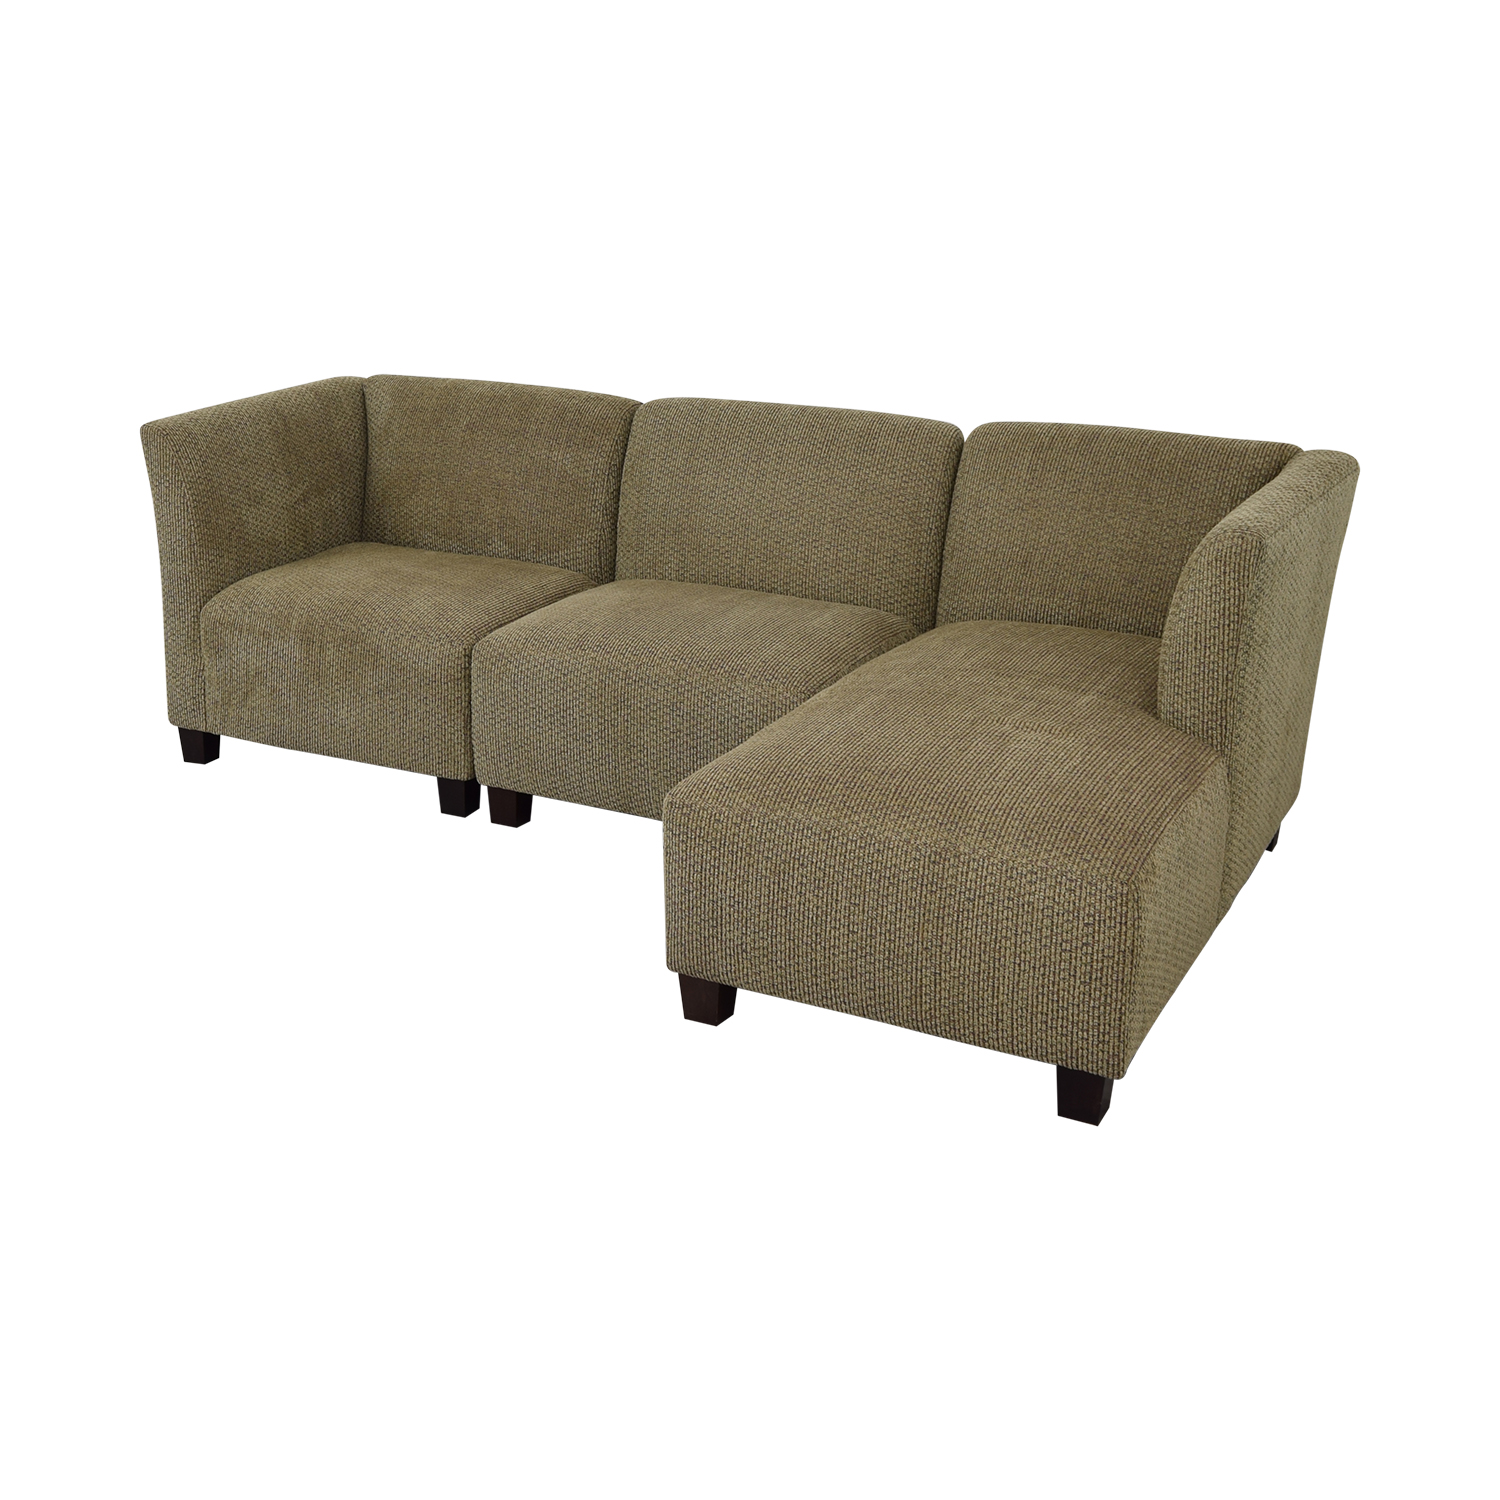 Rowe Furniture Rowe Furniture Sectional Sofa for sale